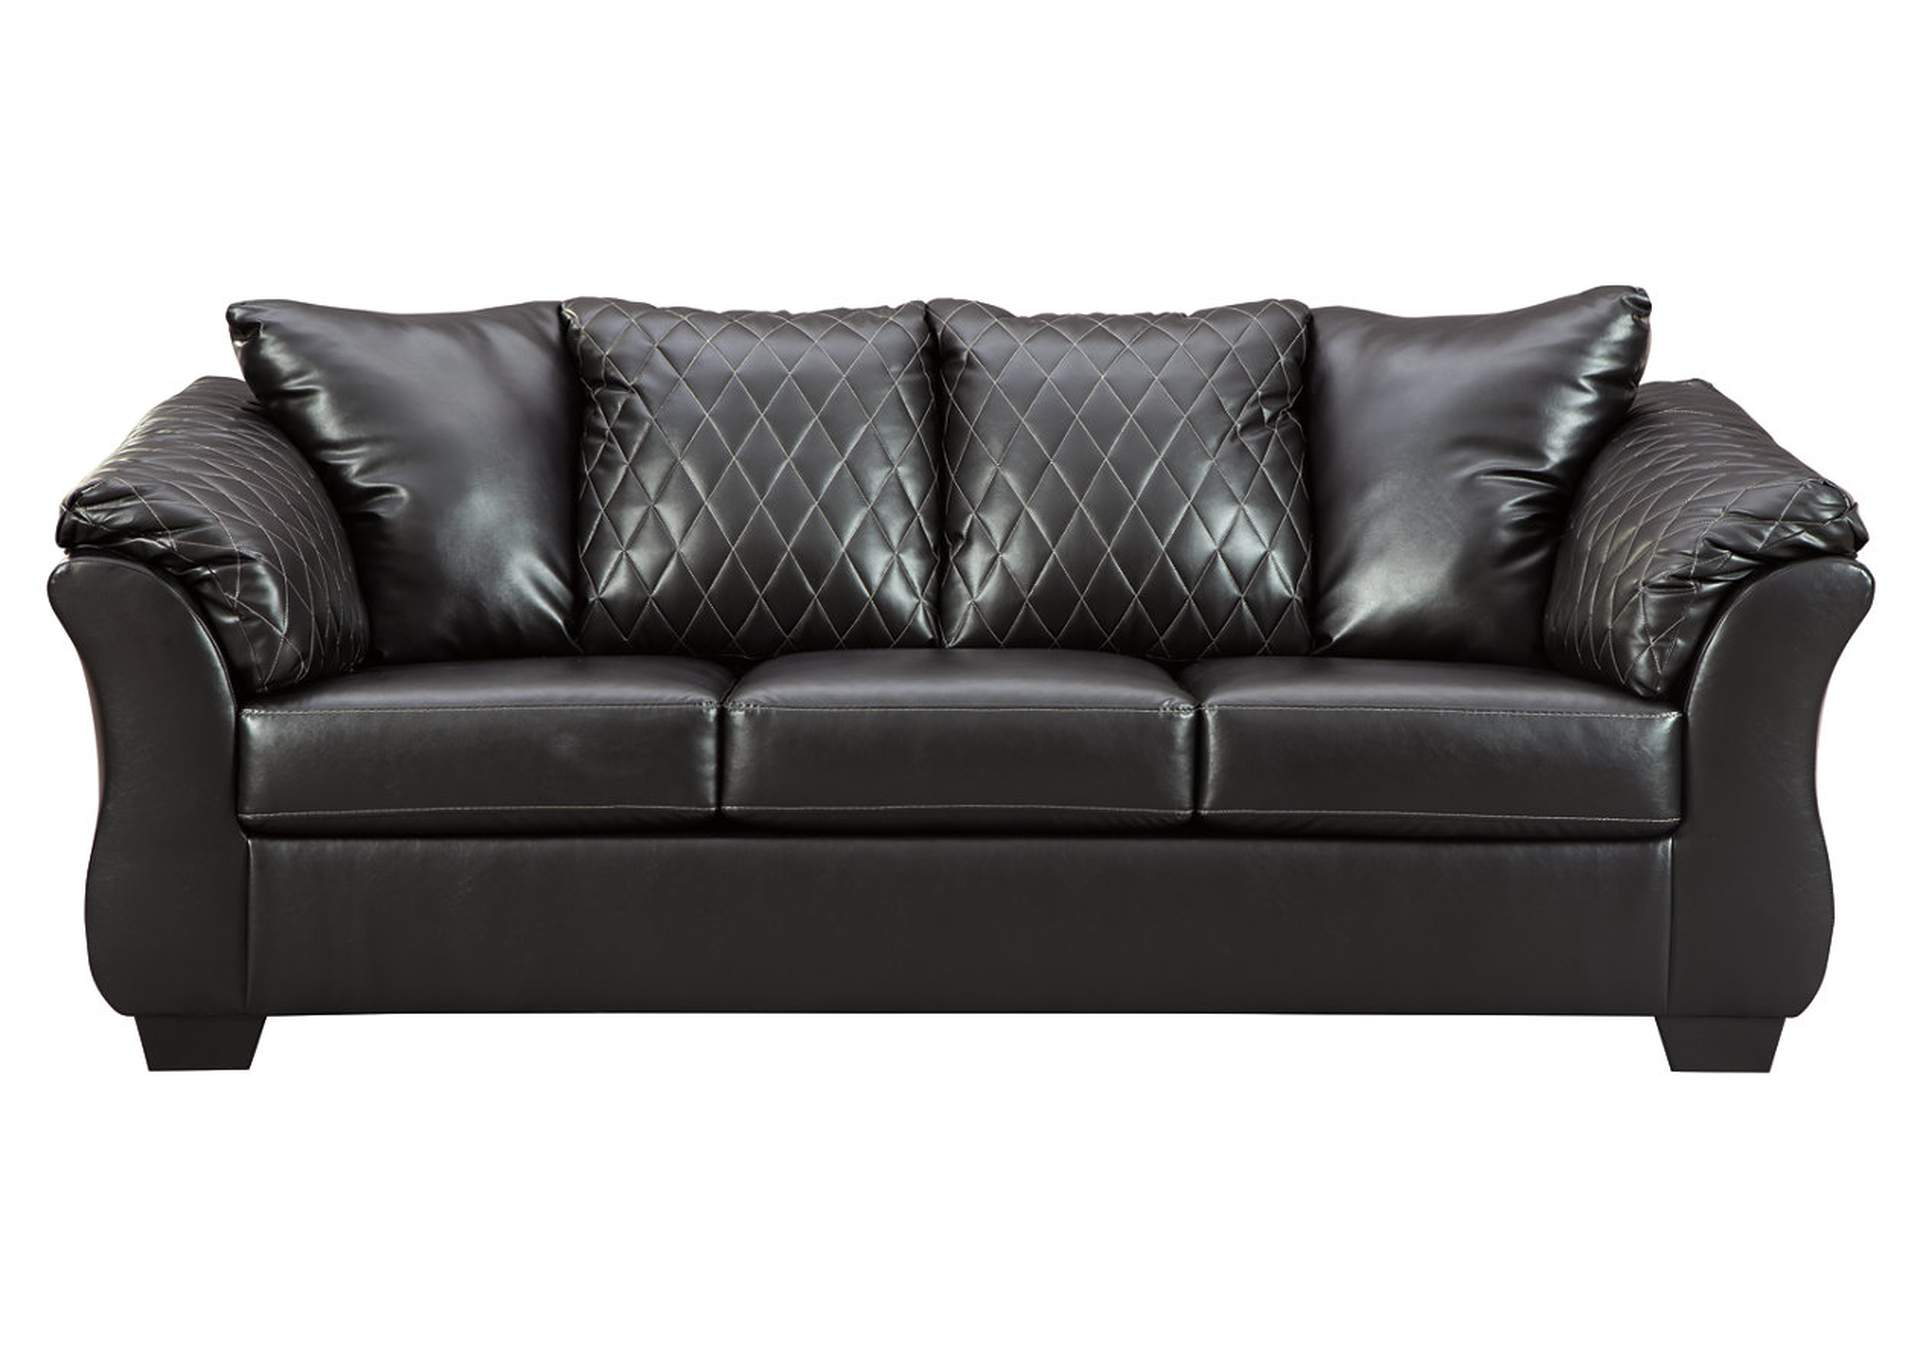 Betrillo Full Sofa Sleeper,Signature Design By Ashley